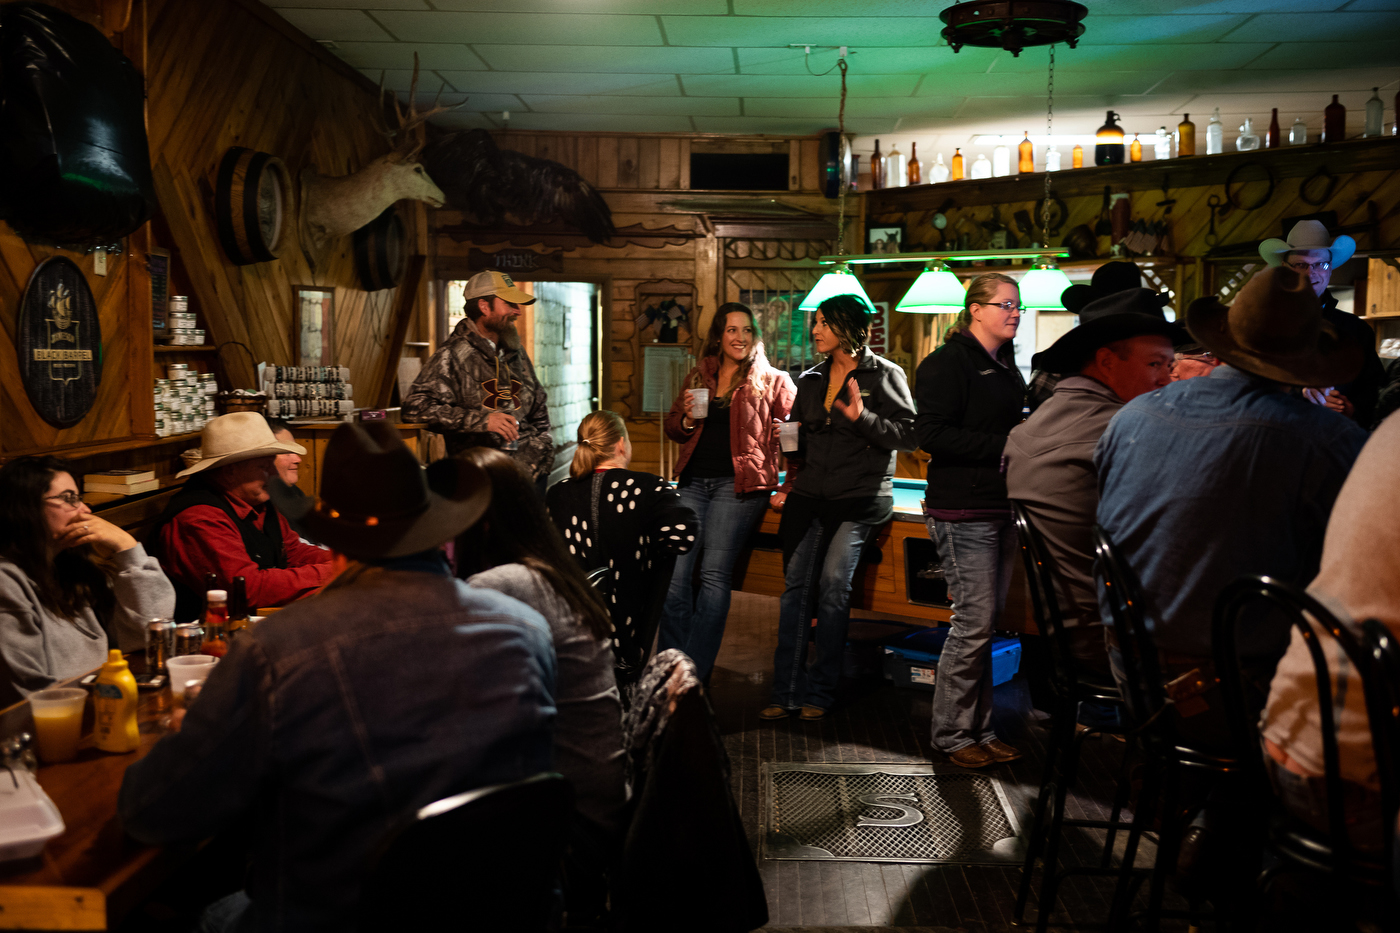 The community gathers for a birthday part at Smoky's Bar in Meadow, SD, where the area population hovers around 30 people.